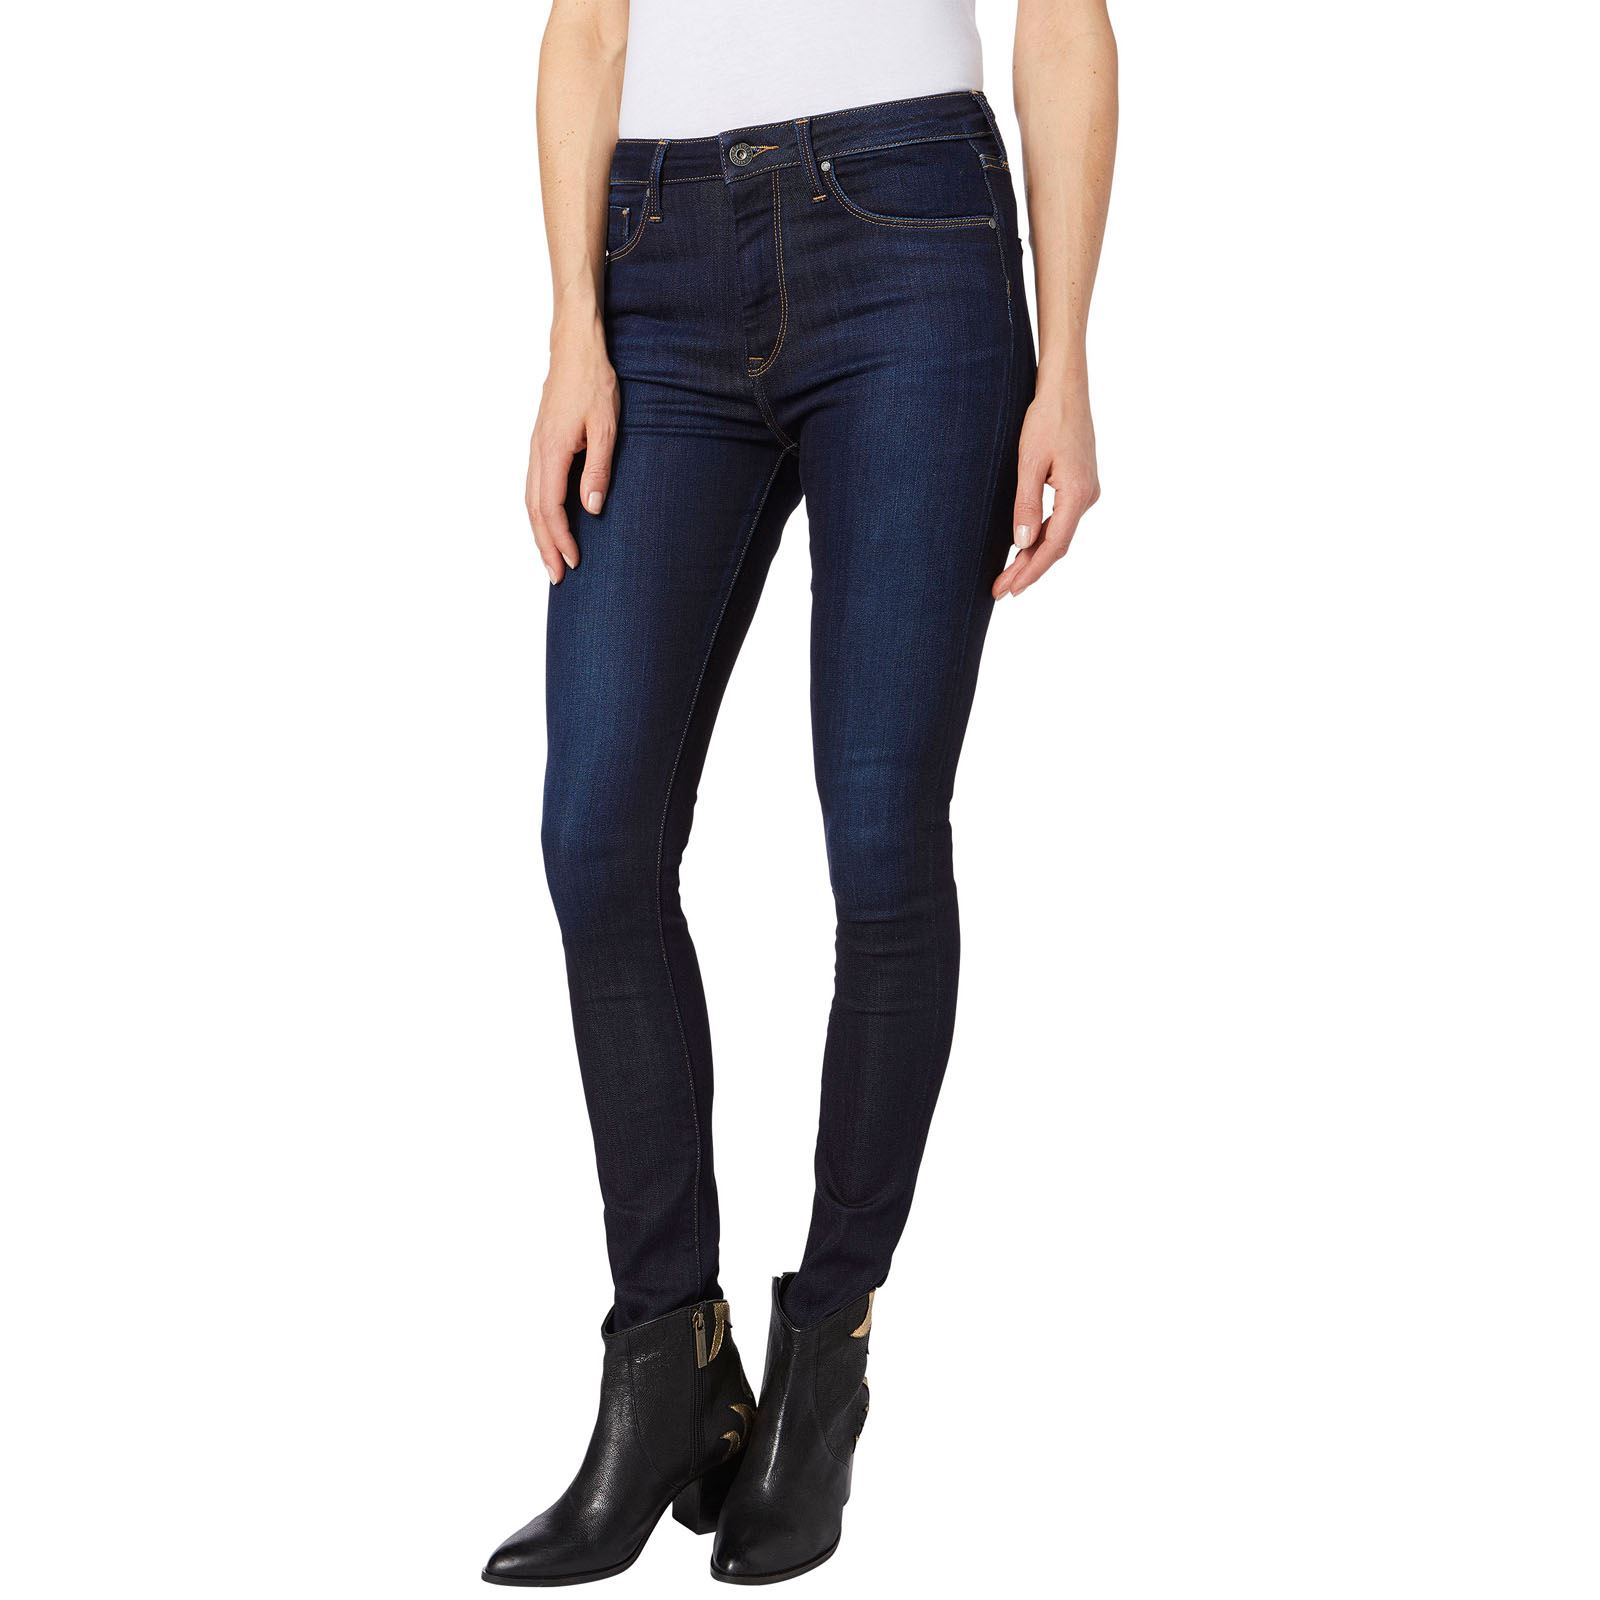 Pepe Jeans London Regent - Jean regular - denim bleu